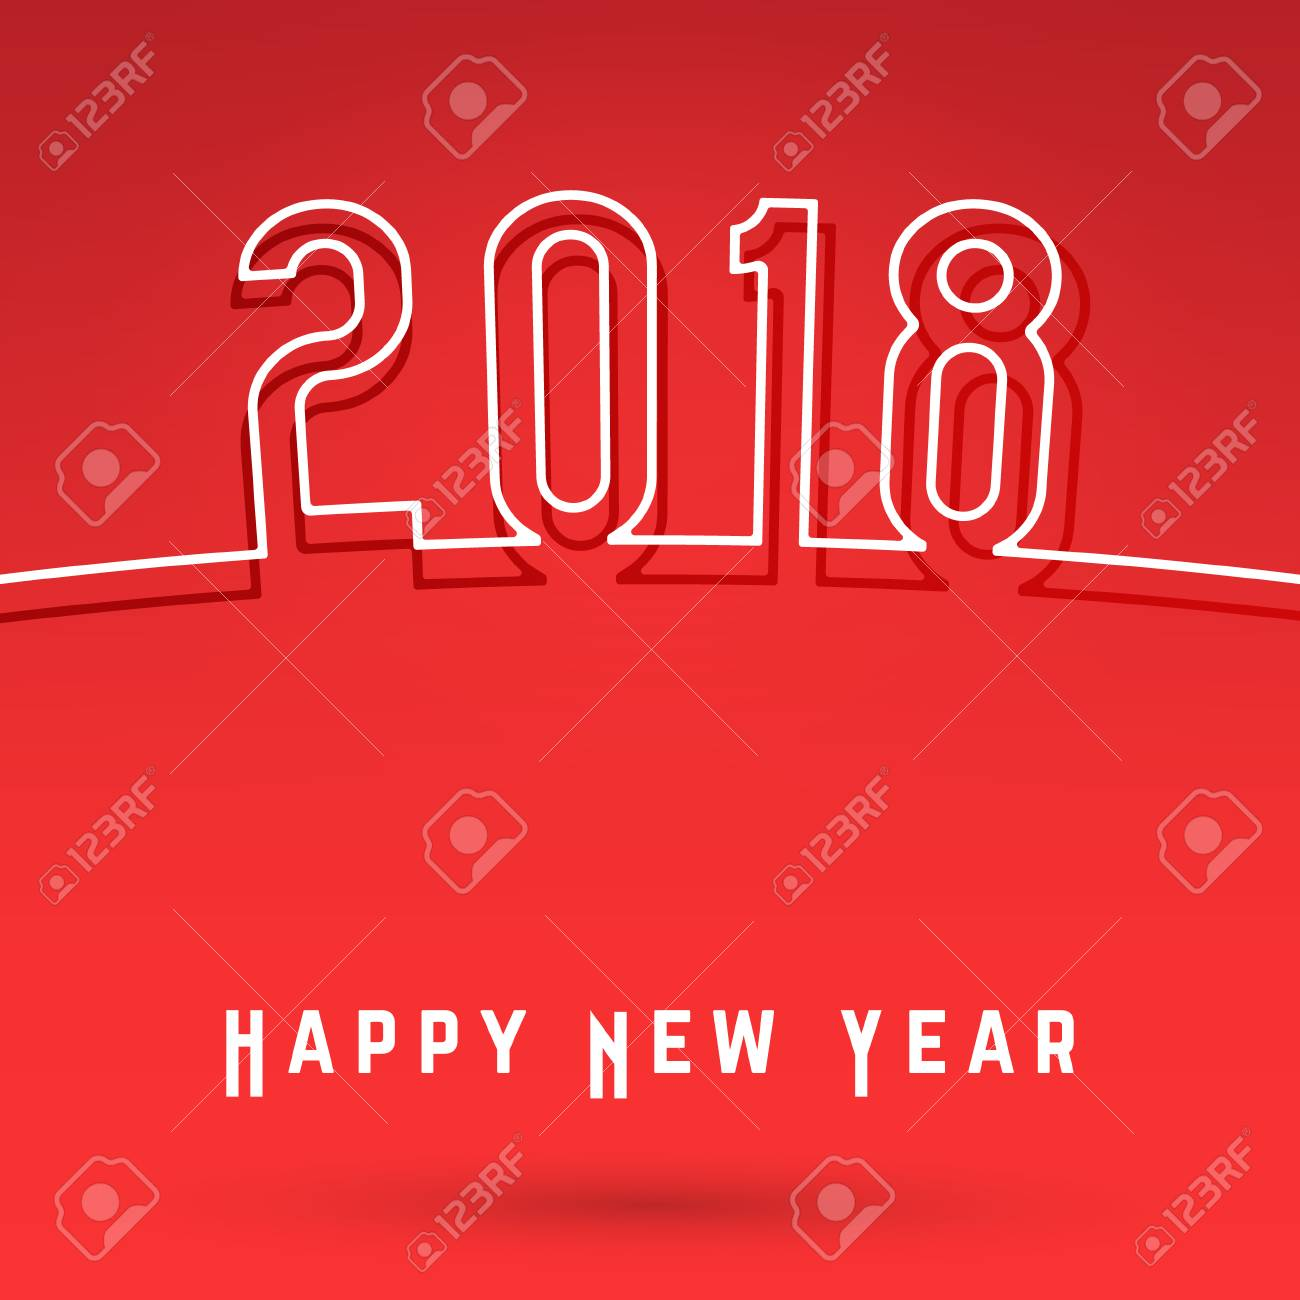 2018 happy new year cover template minimal design covers for magazine printing products